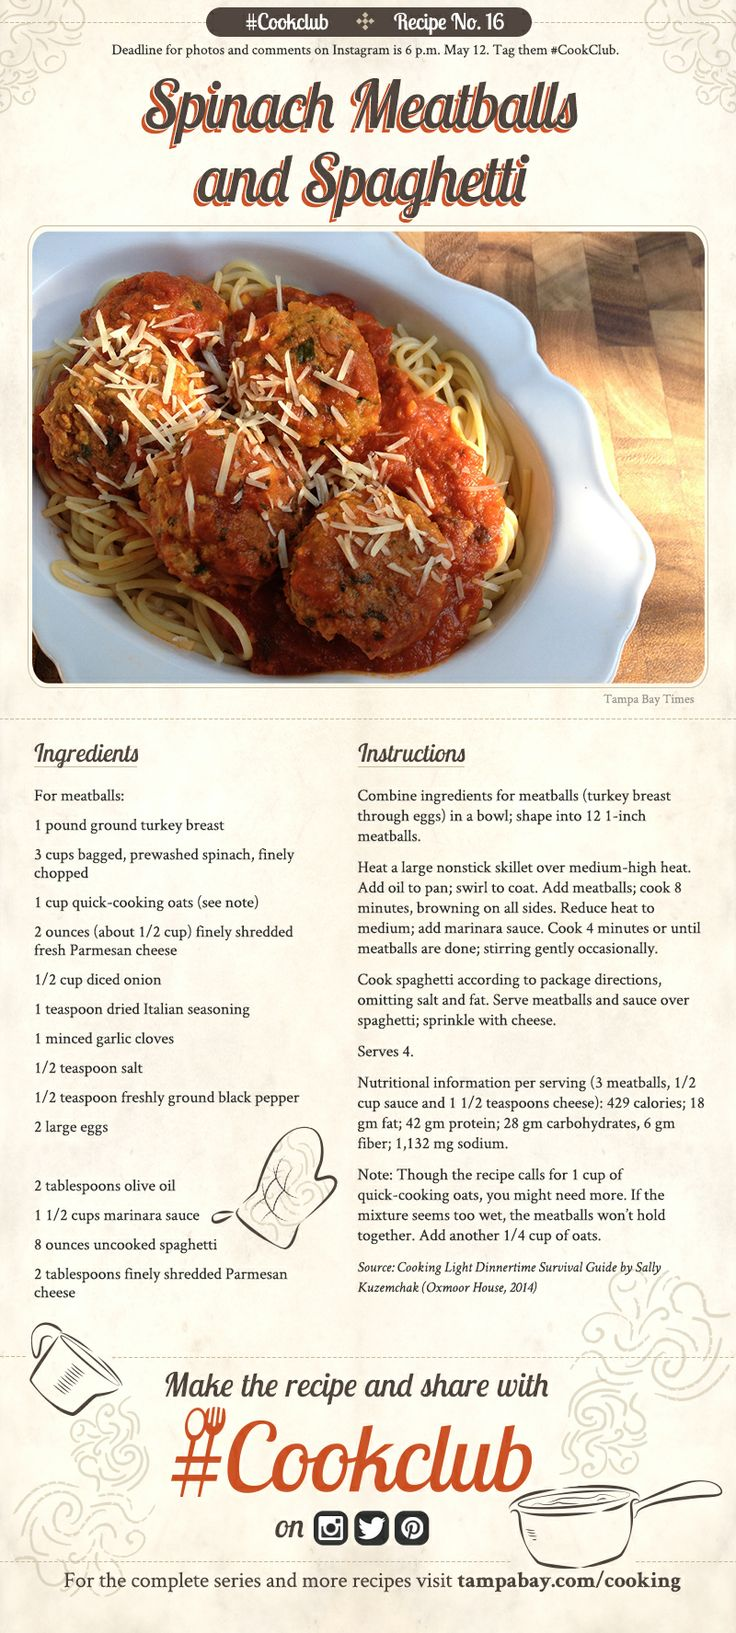 #CookClub Recipe No. 16 is a classic!: Lights Dinnertime, Cookclub Recipe, Yummy Food, Turkey Spinach Meatballs, Healthy Eating, Cooking Lights, Healthy Recipe, Survival Guide, Dinnertime Survival